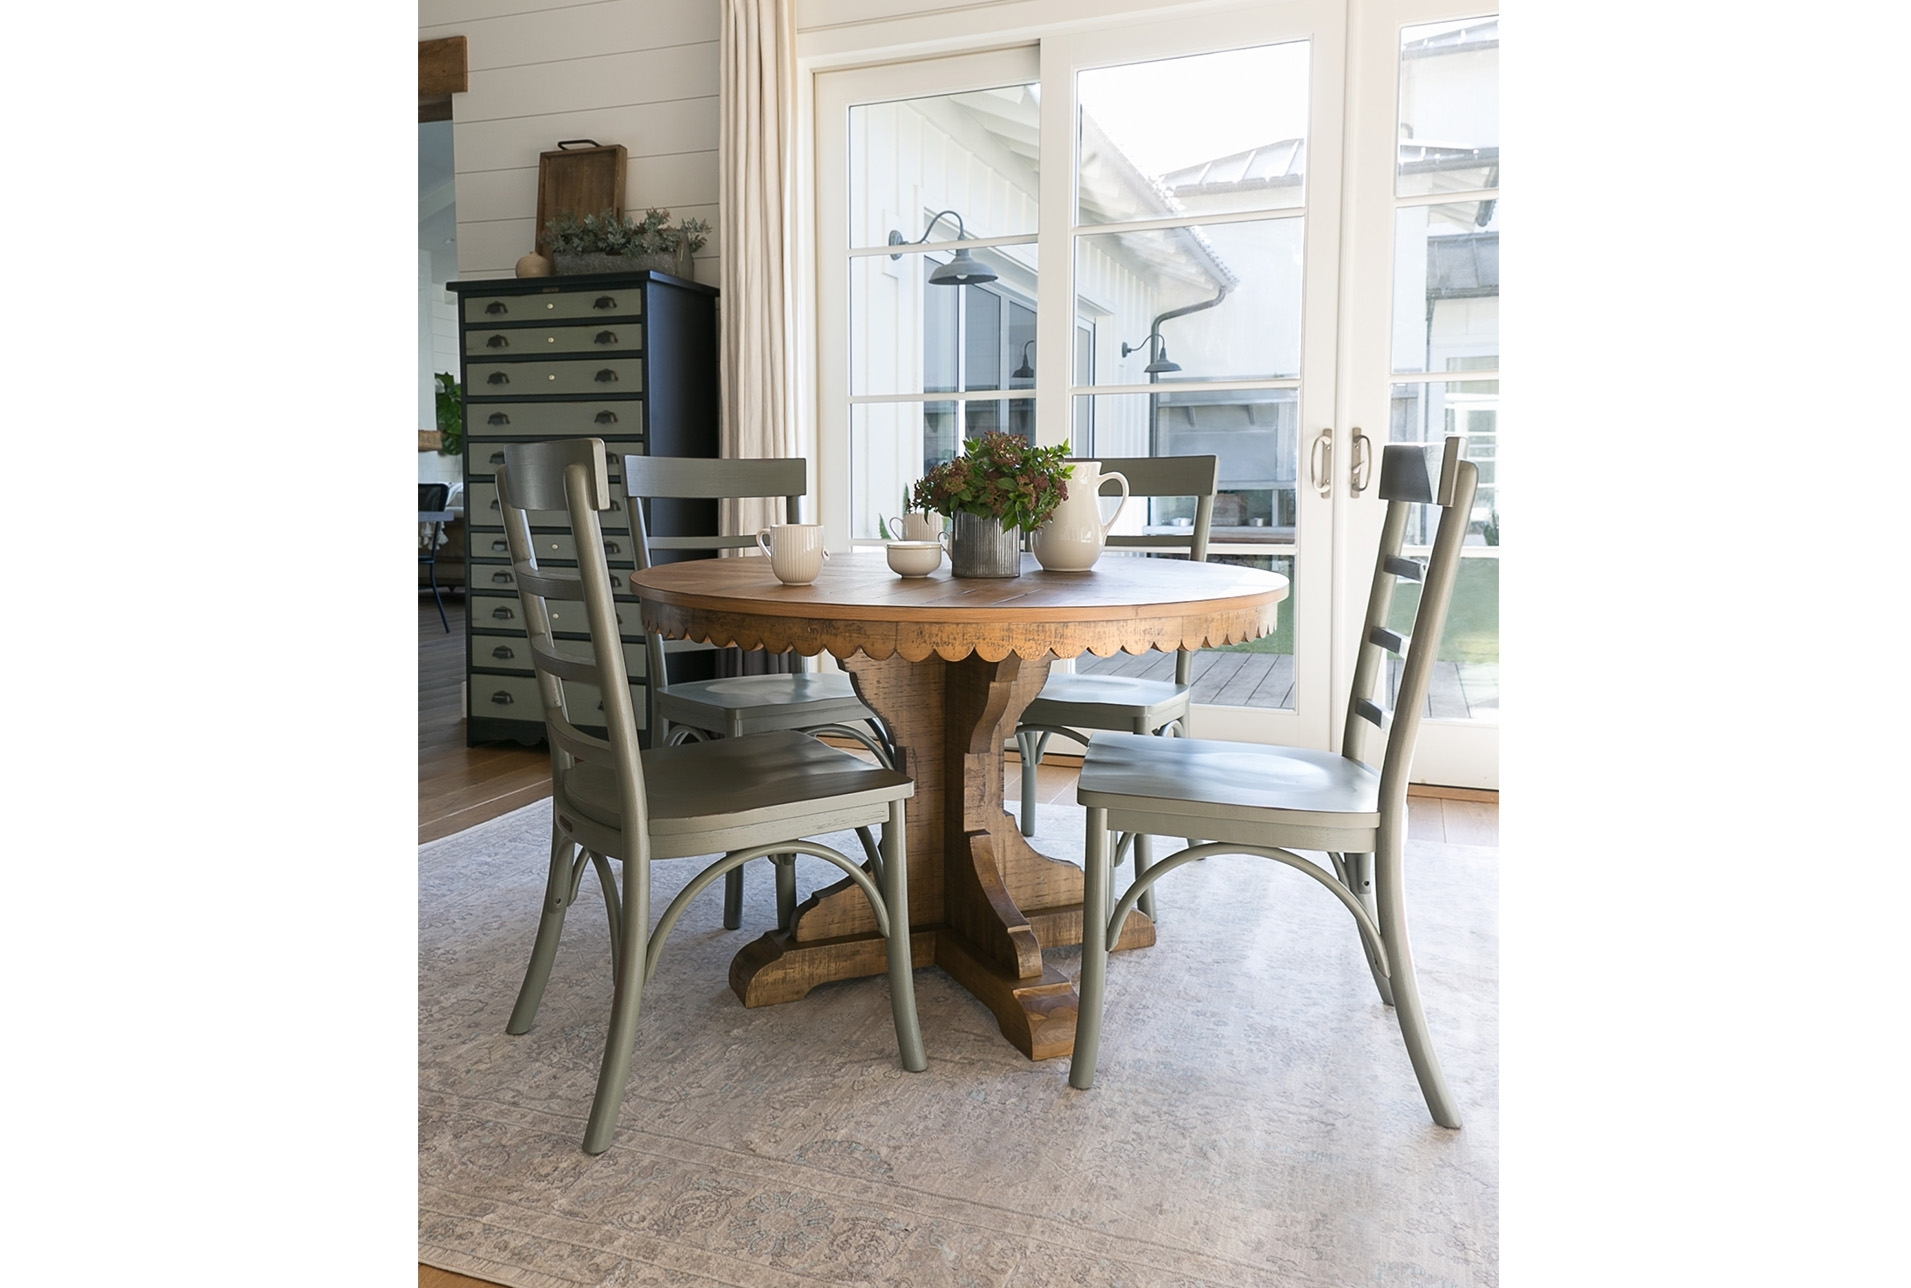 63X90 Rug Magnolia Home Ella Rose Natural/naturaljoanna Gaines Regarding Current Magnolia Home Top Tier Round Dining Tables (Image 1 of 20)